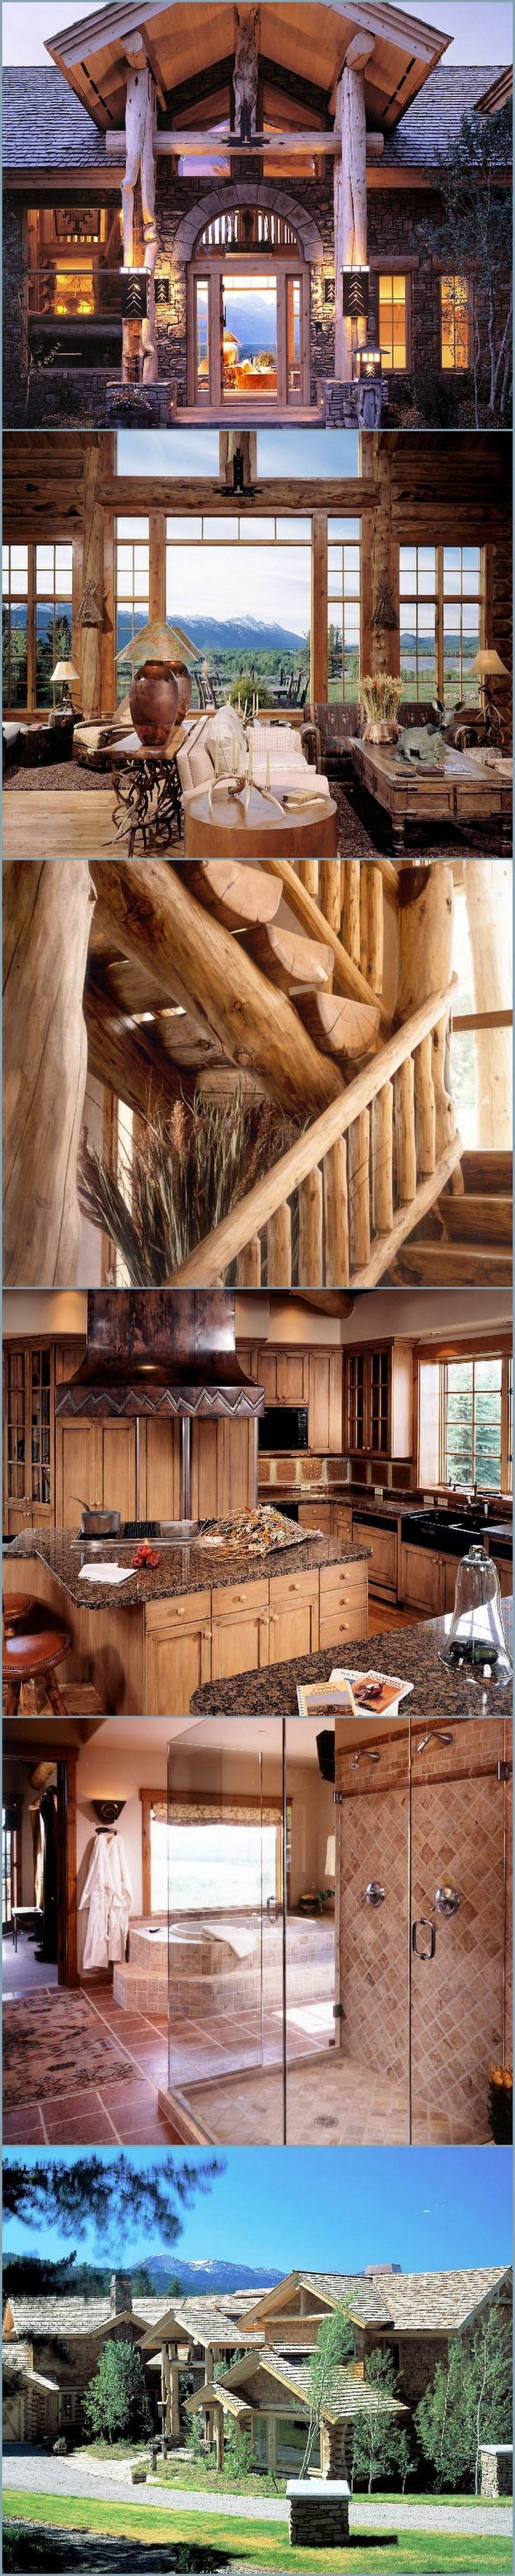 Beautiful rustic cabin in the woods!